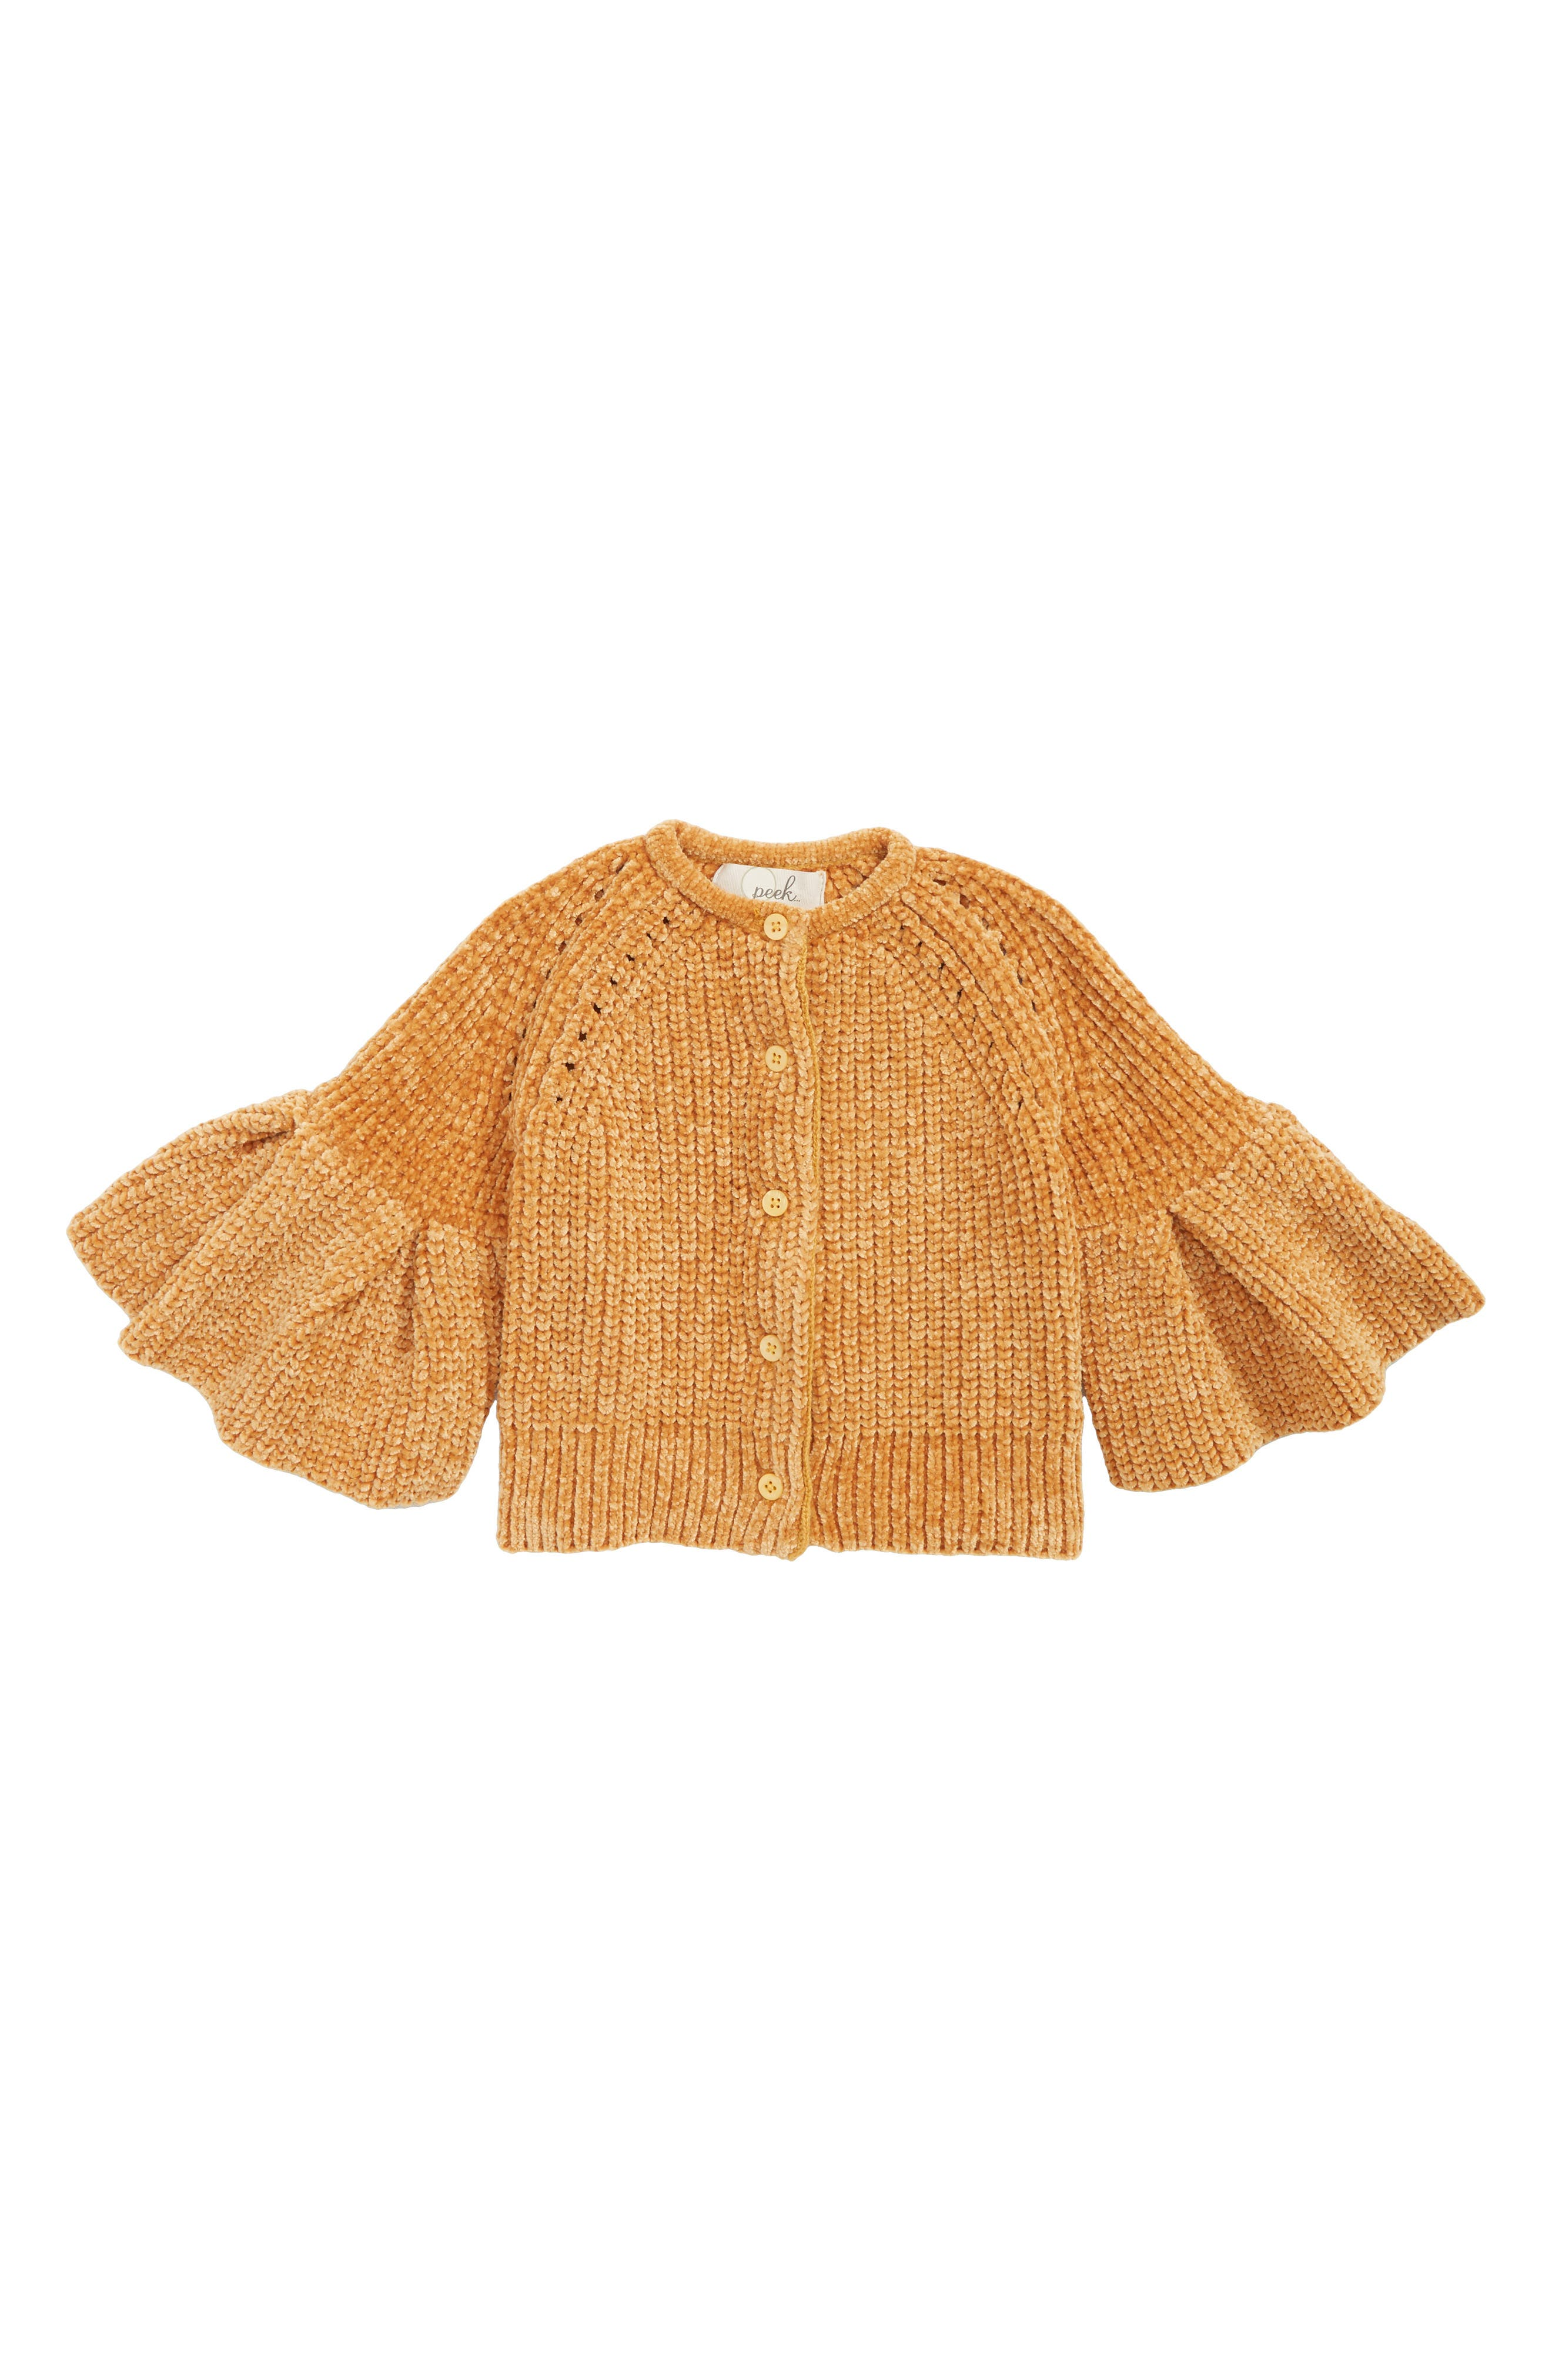 Peek Kinsley Cardigan,                             Main thumbnail 1, color,                             700